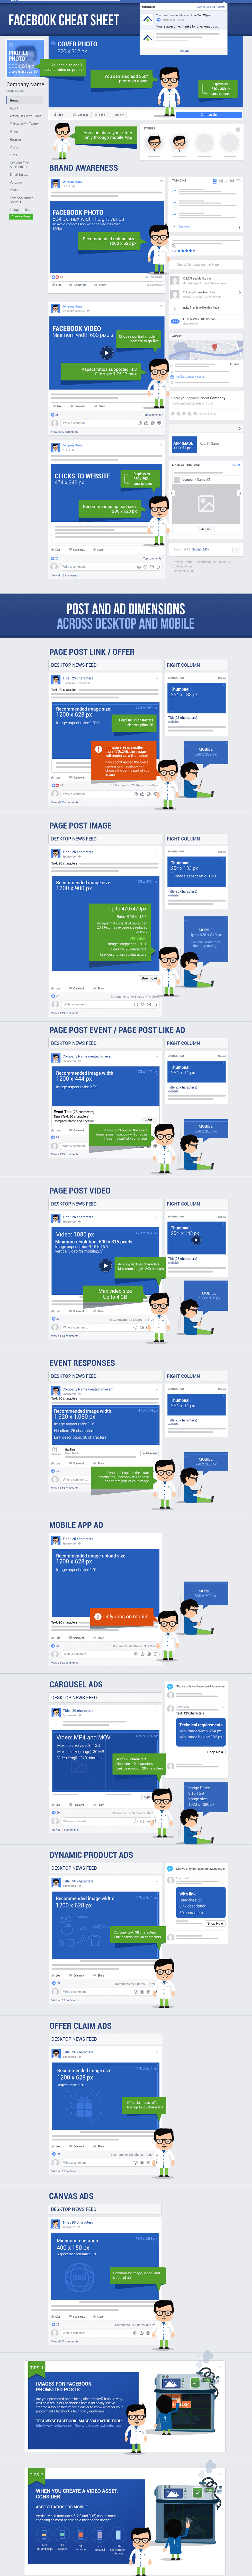 Facebook Cheat Sheet Sizes Updated Guide 2018 Social Media Images